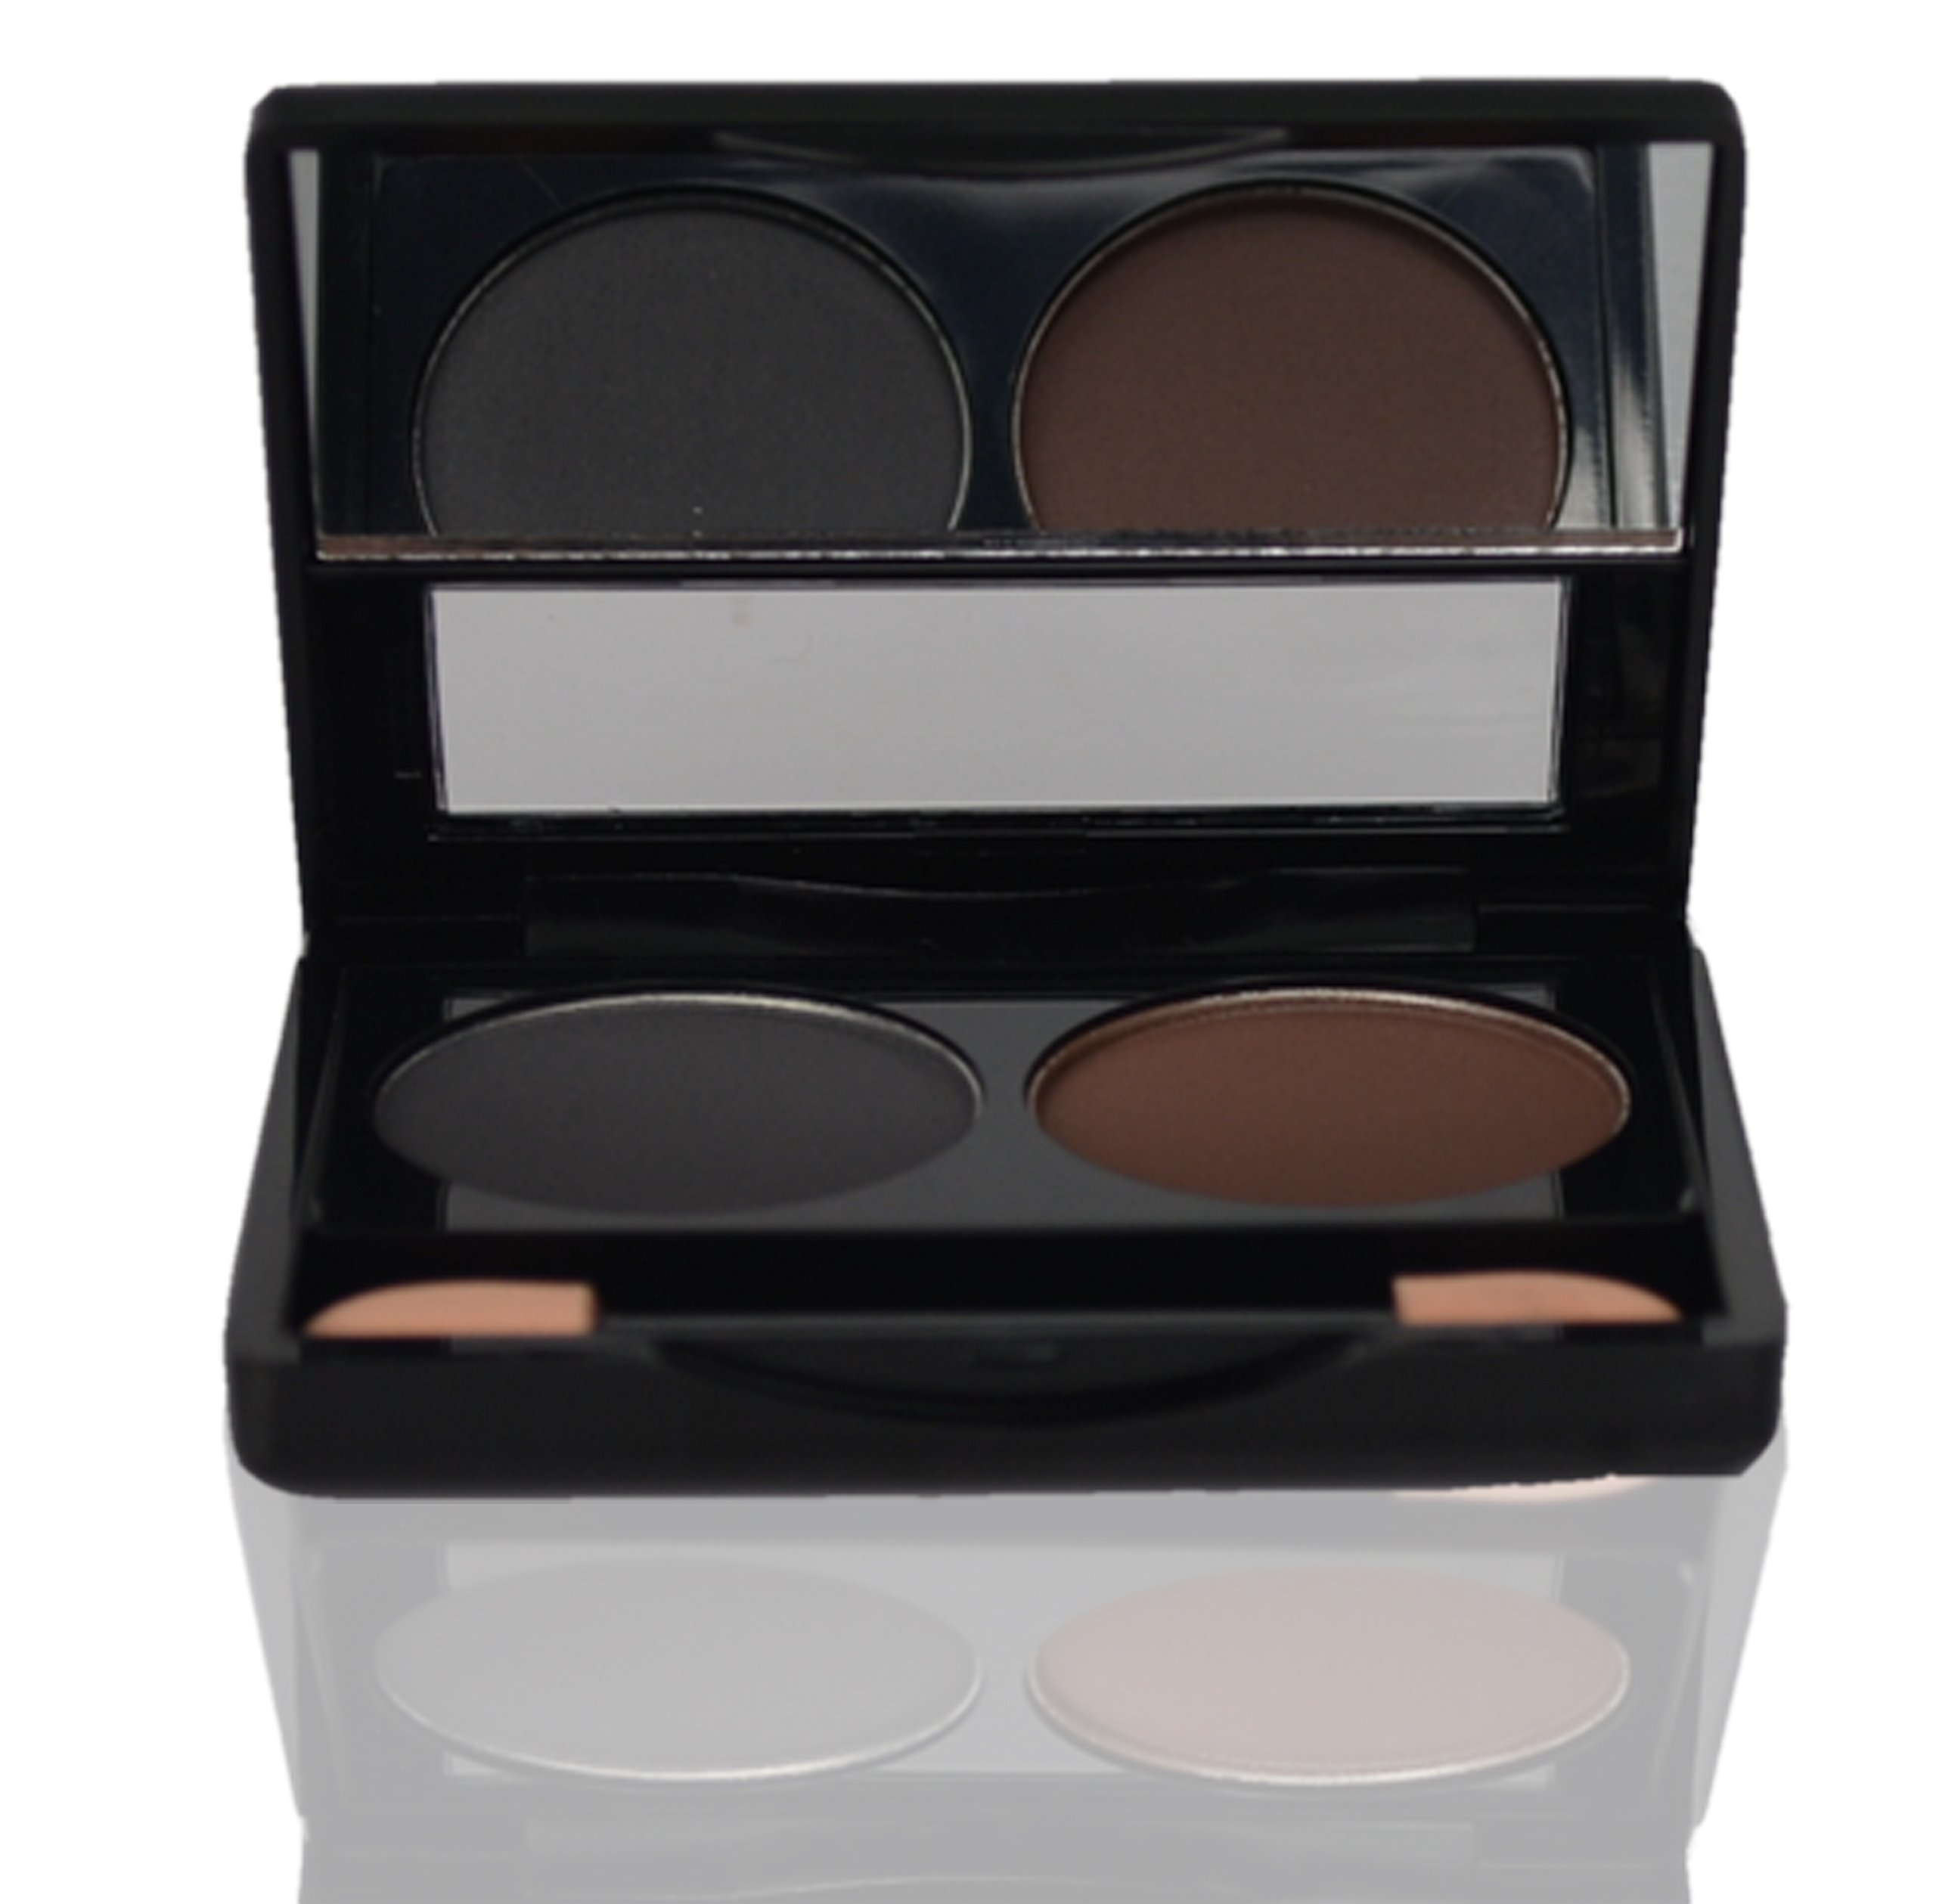 Cleure Duo Hypoallergenic Mineral Natural Eyeshadow - Wet/Dry, Great for Sensitive Eyes